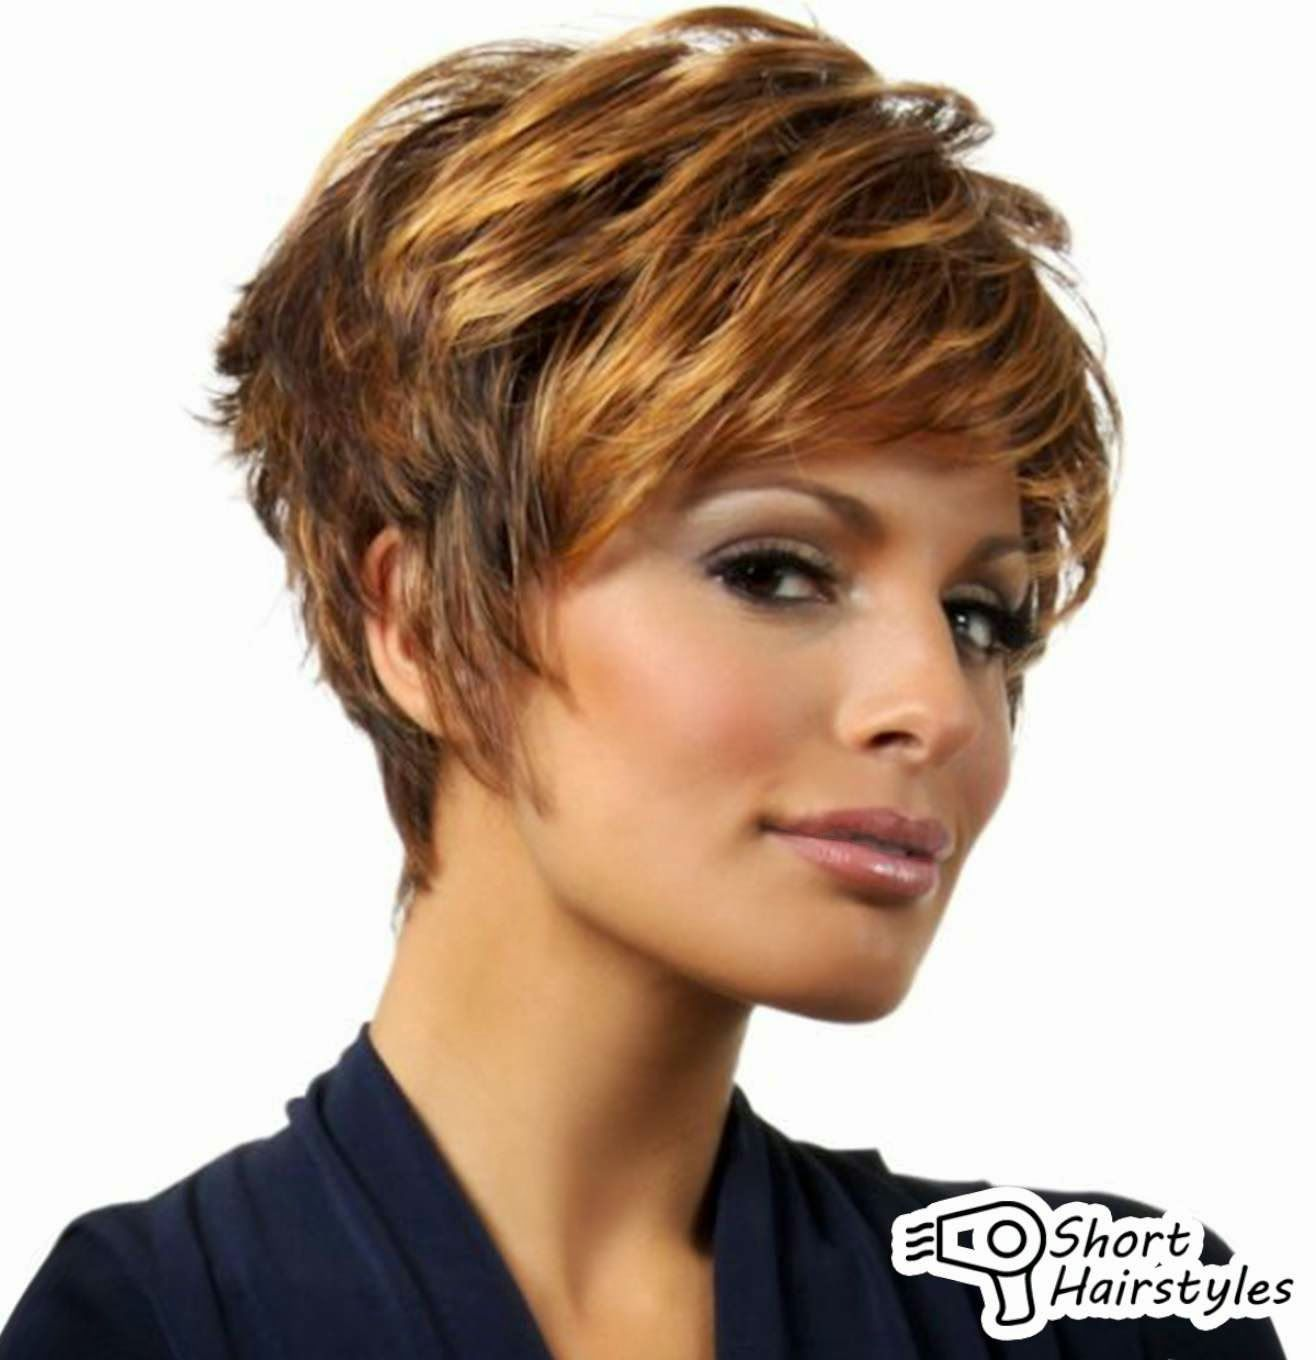 short+hair+styles+for+women+over+40 | women hairstyle designs